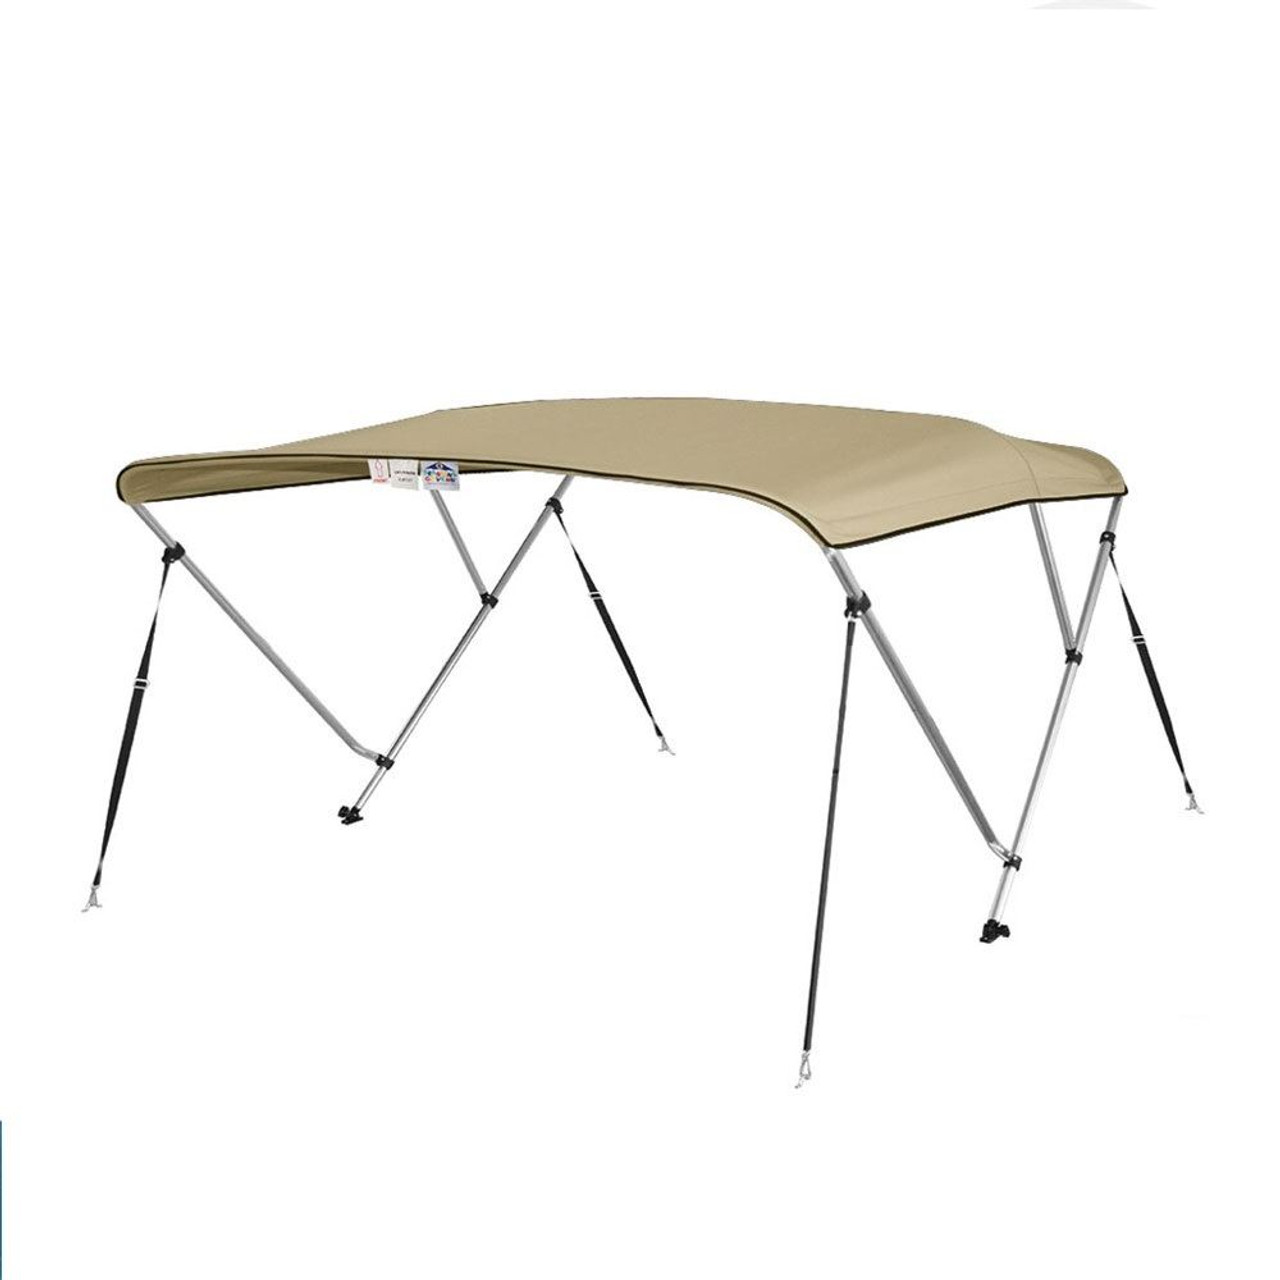 "BIMINI TOP BOAT COVER CANVAS FABRIC GREEN W//BOOT FITS 3 BOW 72/""L 54/""H 67/""-72/""W"